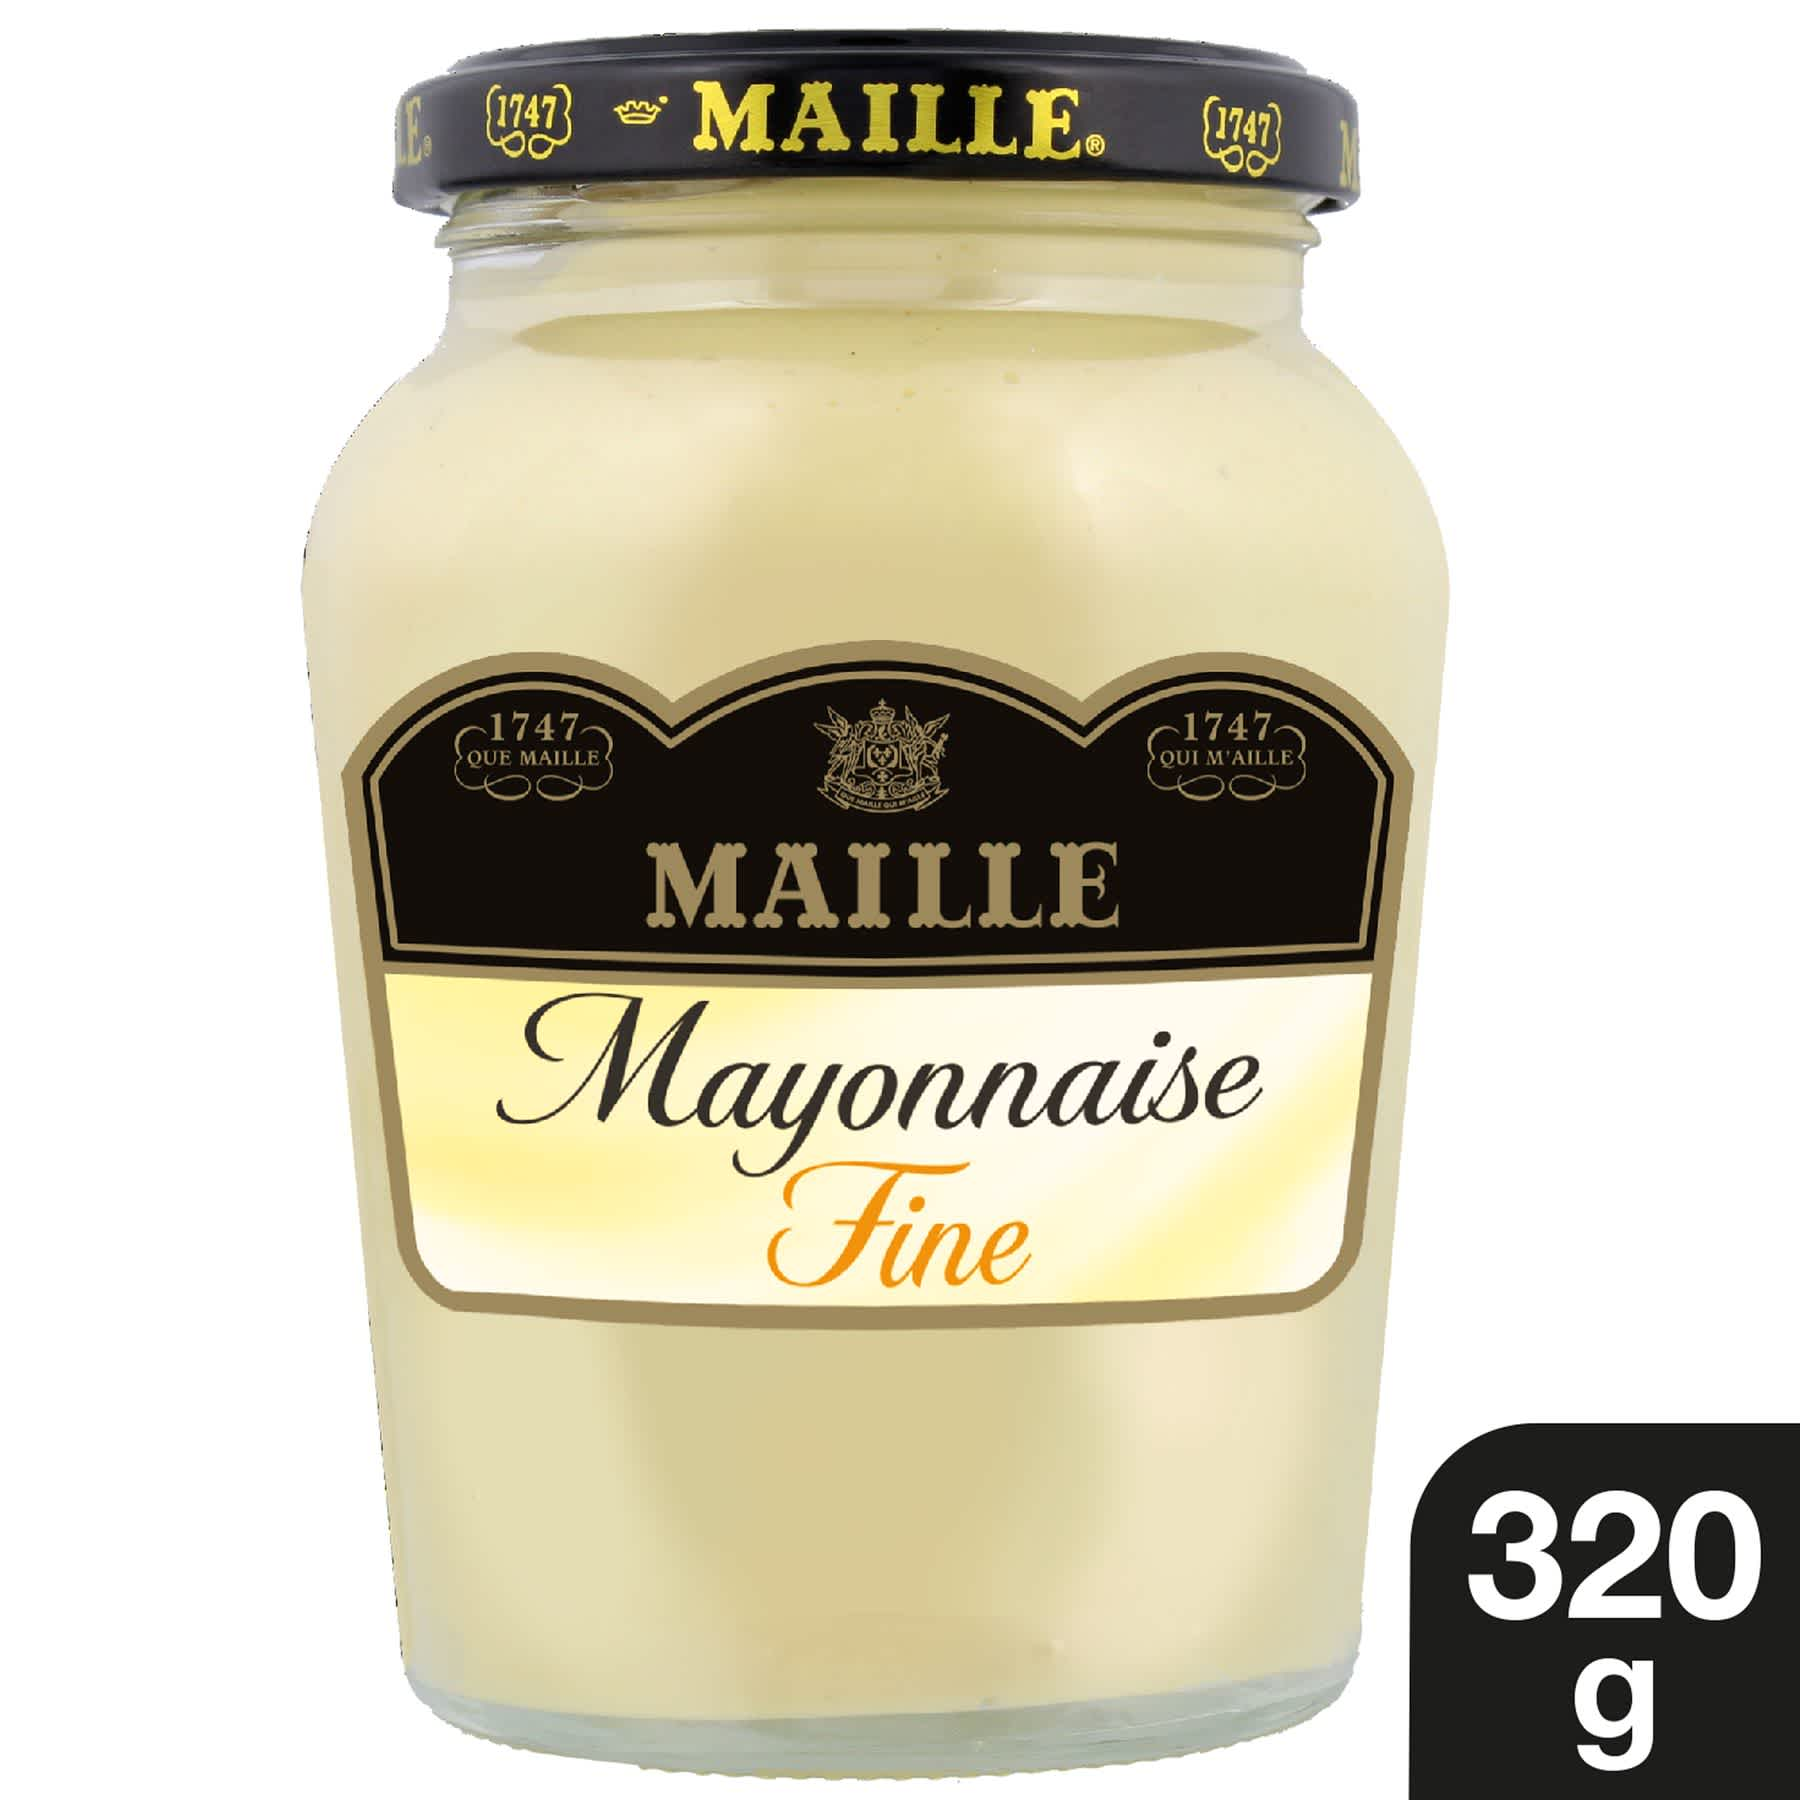 Maille Mayonnaise Fine Qualite Traiteur Bocal 320g 1